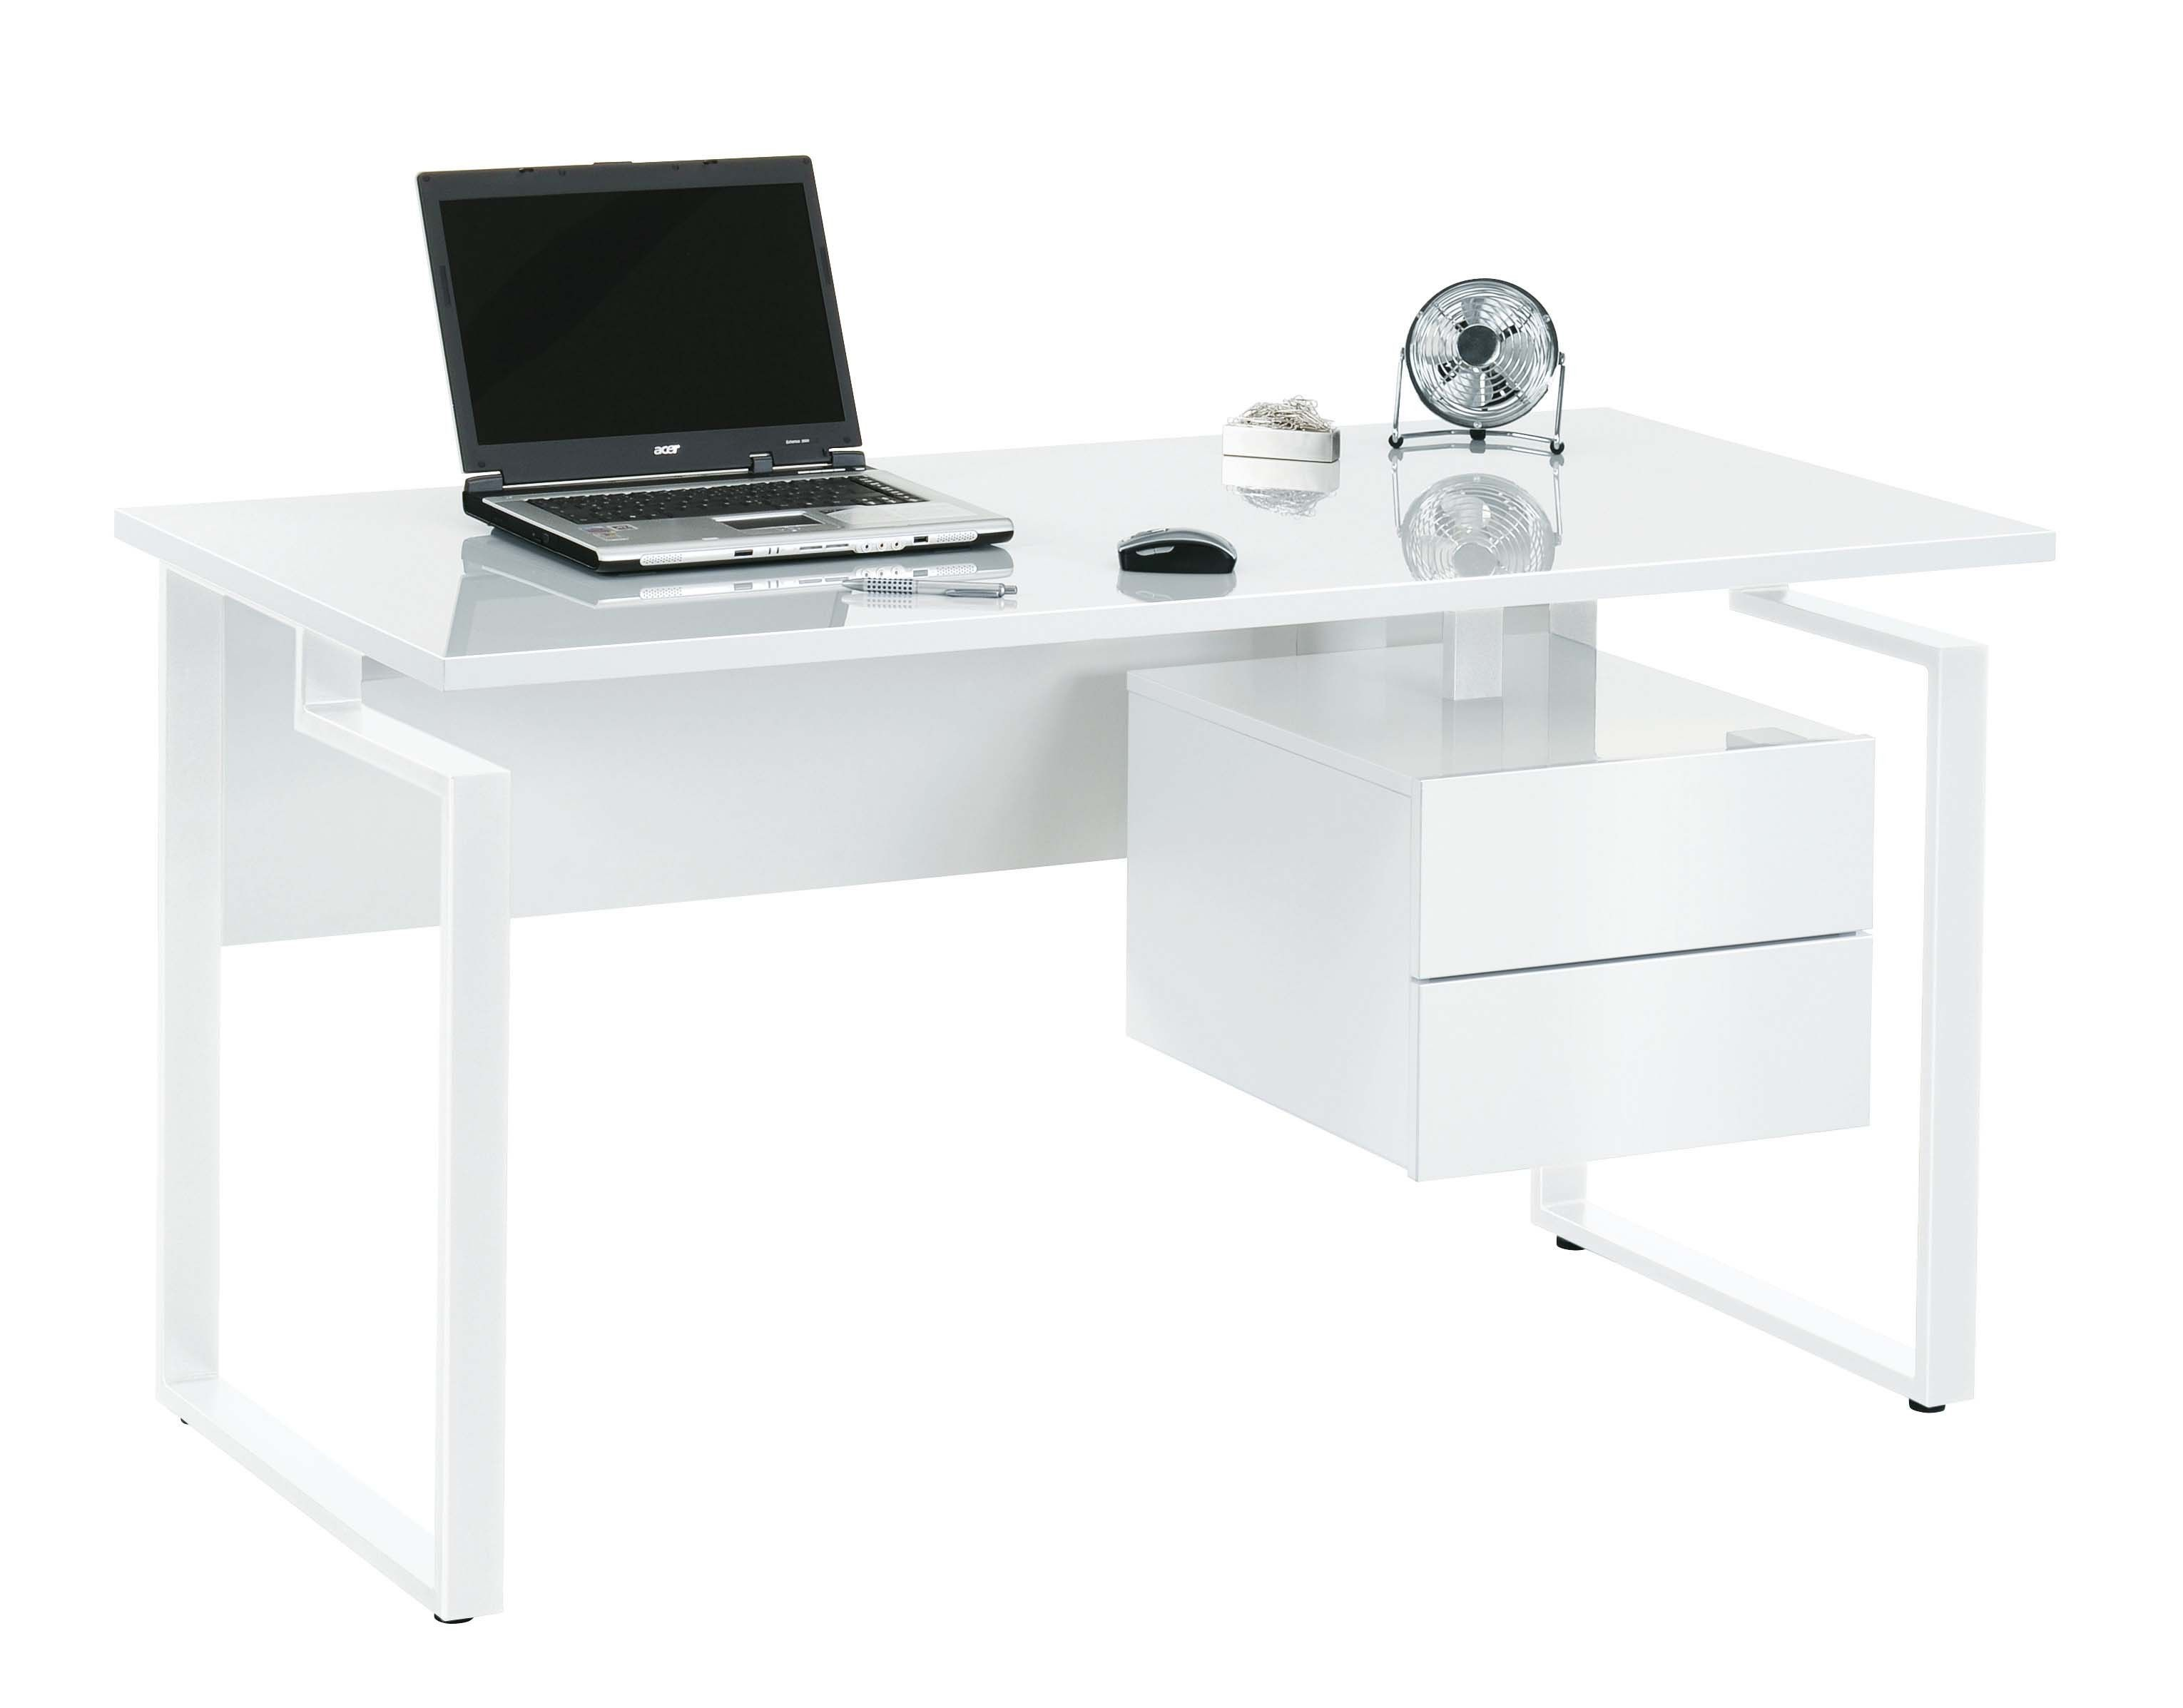 High Gloss White Desk From Jahnke Contemporary Home Office Furniture White Gloss Computer Desk Home Office Furniture Sets